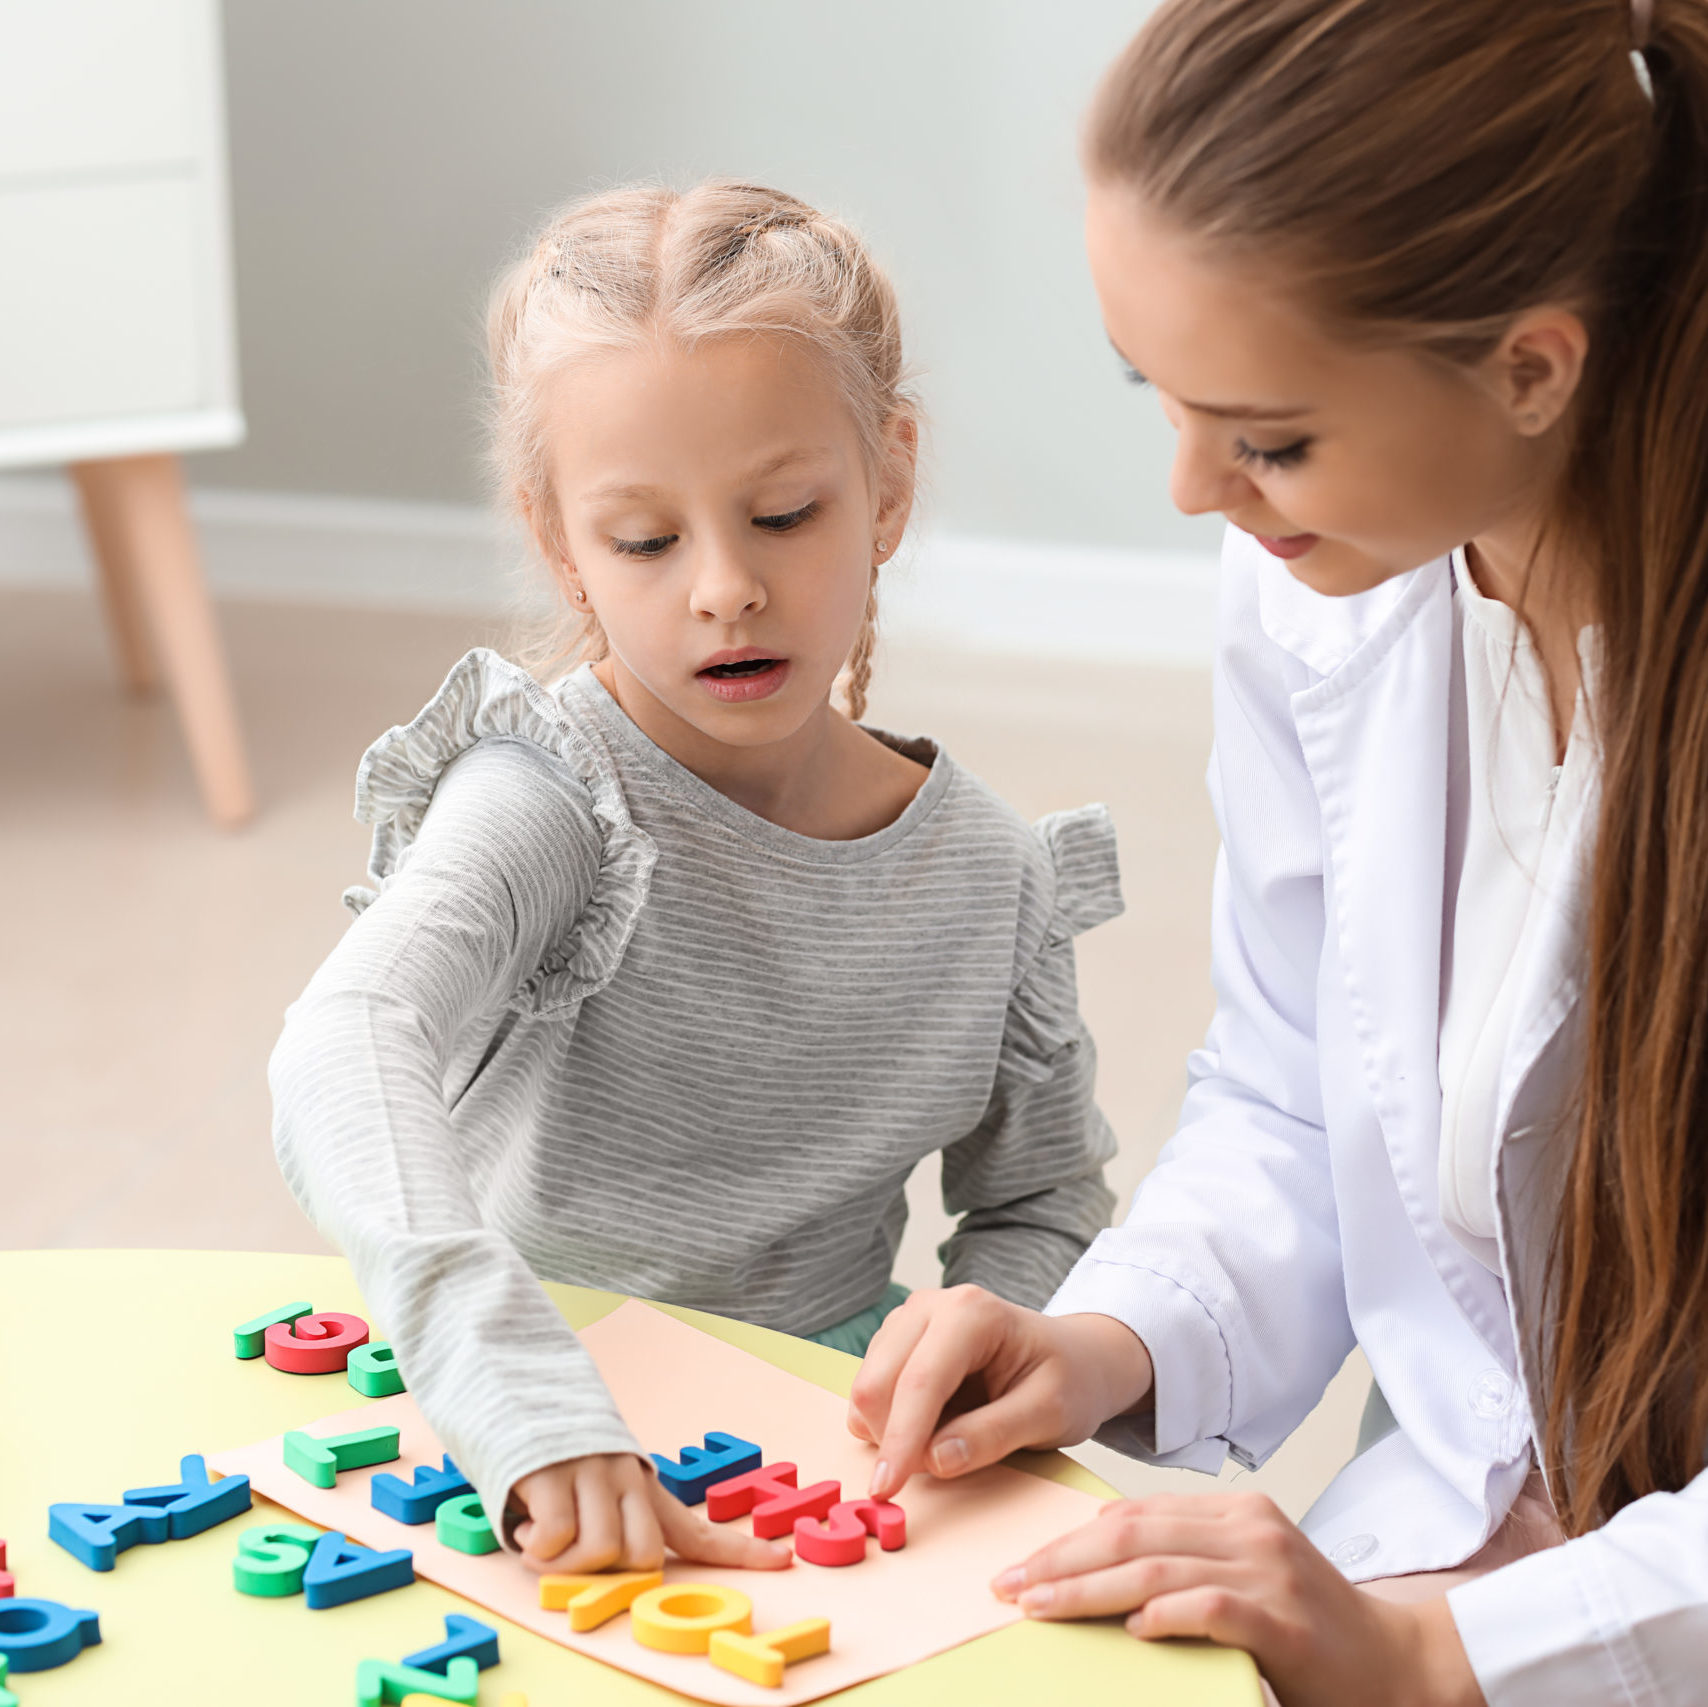 At The Physio Clinic we understand how hard it can be to devote time to your own health and well-being with the kids in tow (we have kids too!). We have designed our Kids Room with a one-way viewing window so you can see your kids having fun, for your own piece of mind while receiving treatment.